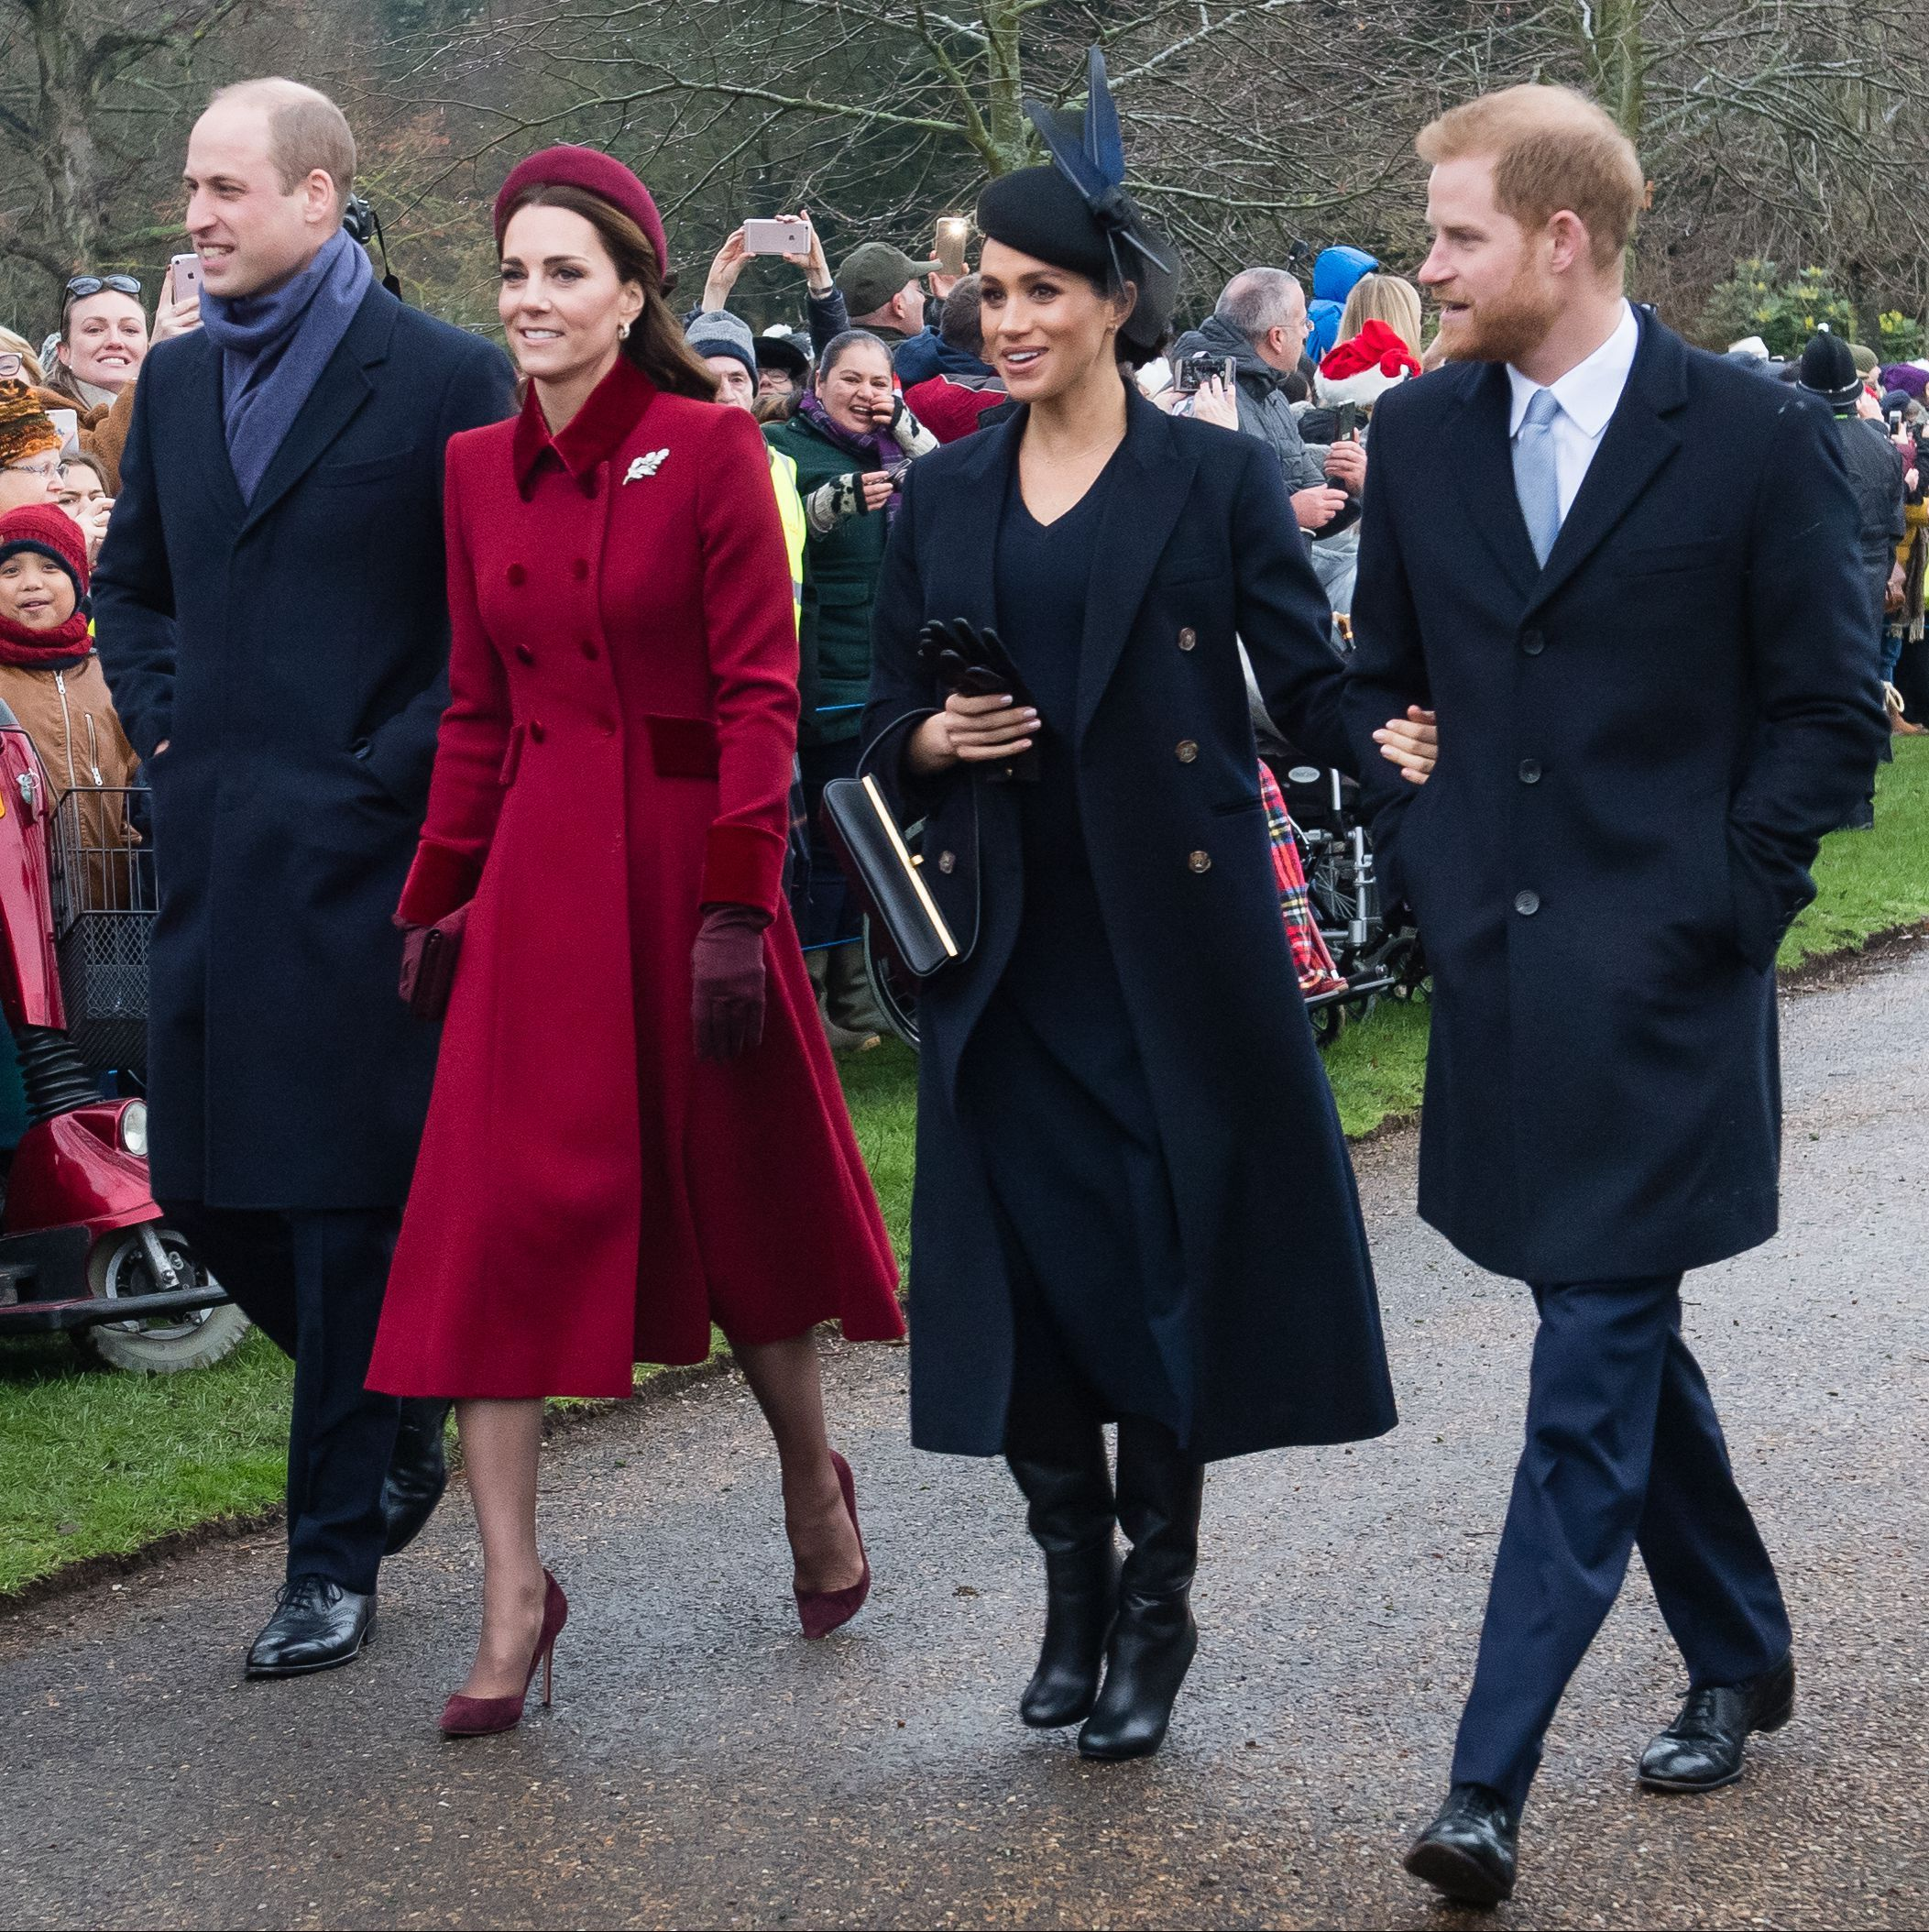 Prince Harry, Prince William, and Kate Middleton Will Meet With Donald Trump, But Meghan Markle Won't